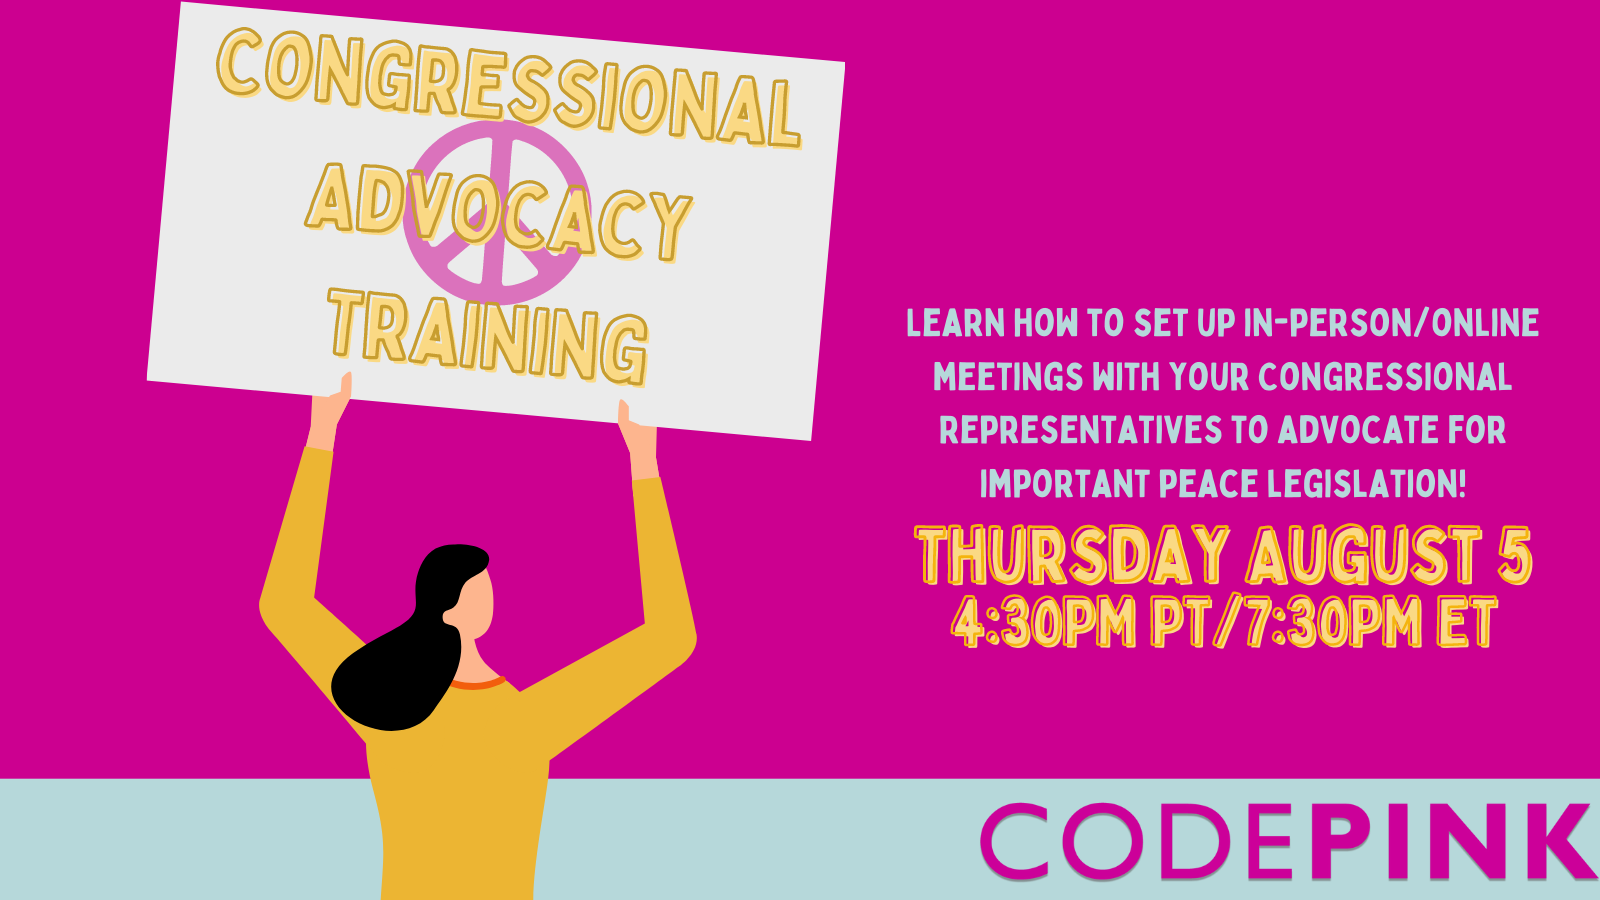 CODEPINK Congressional Advocacy Training - CODEPINK - Women for Peace